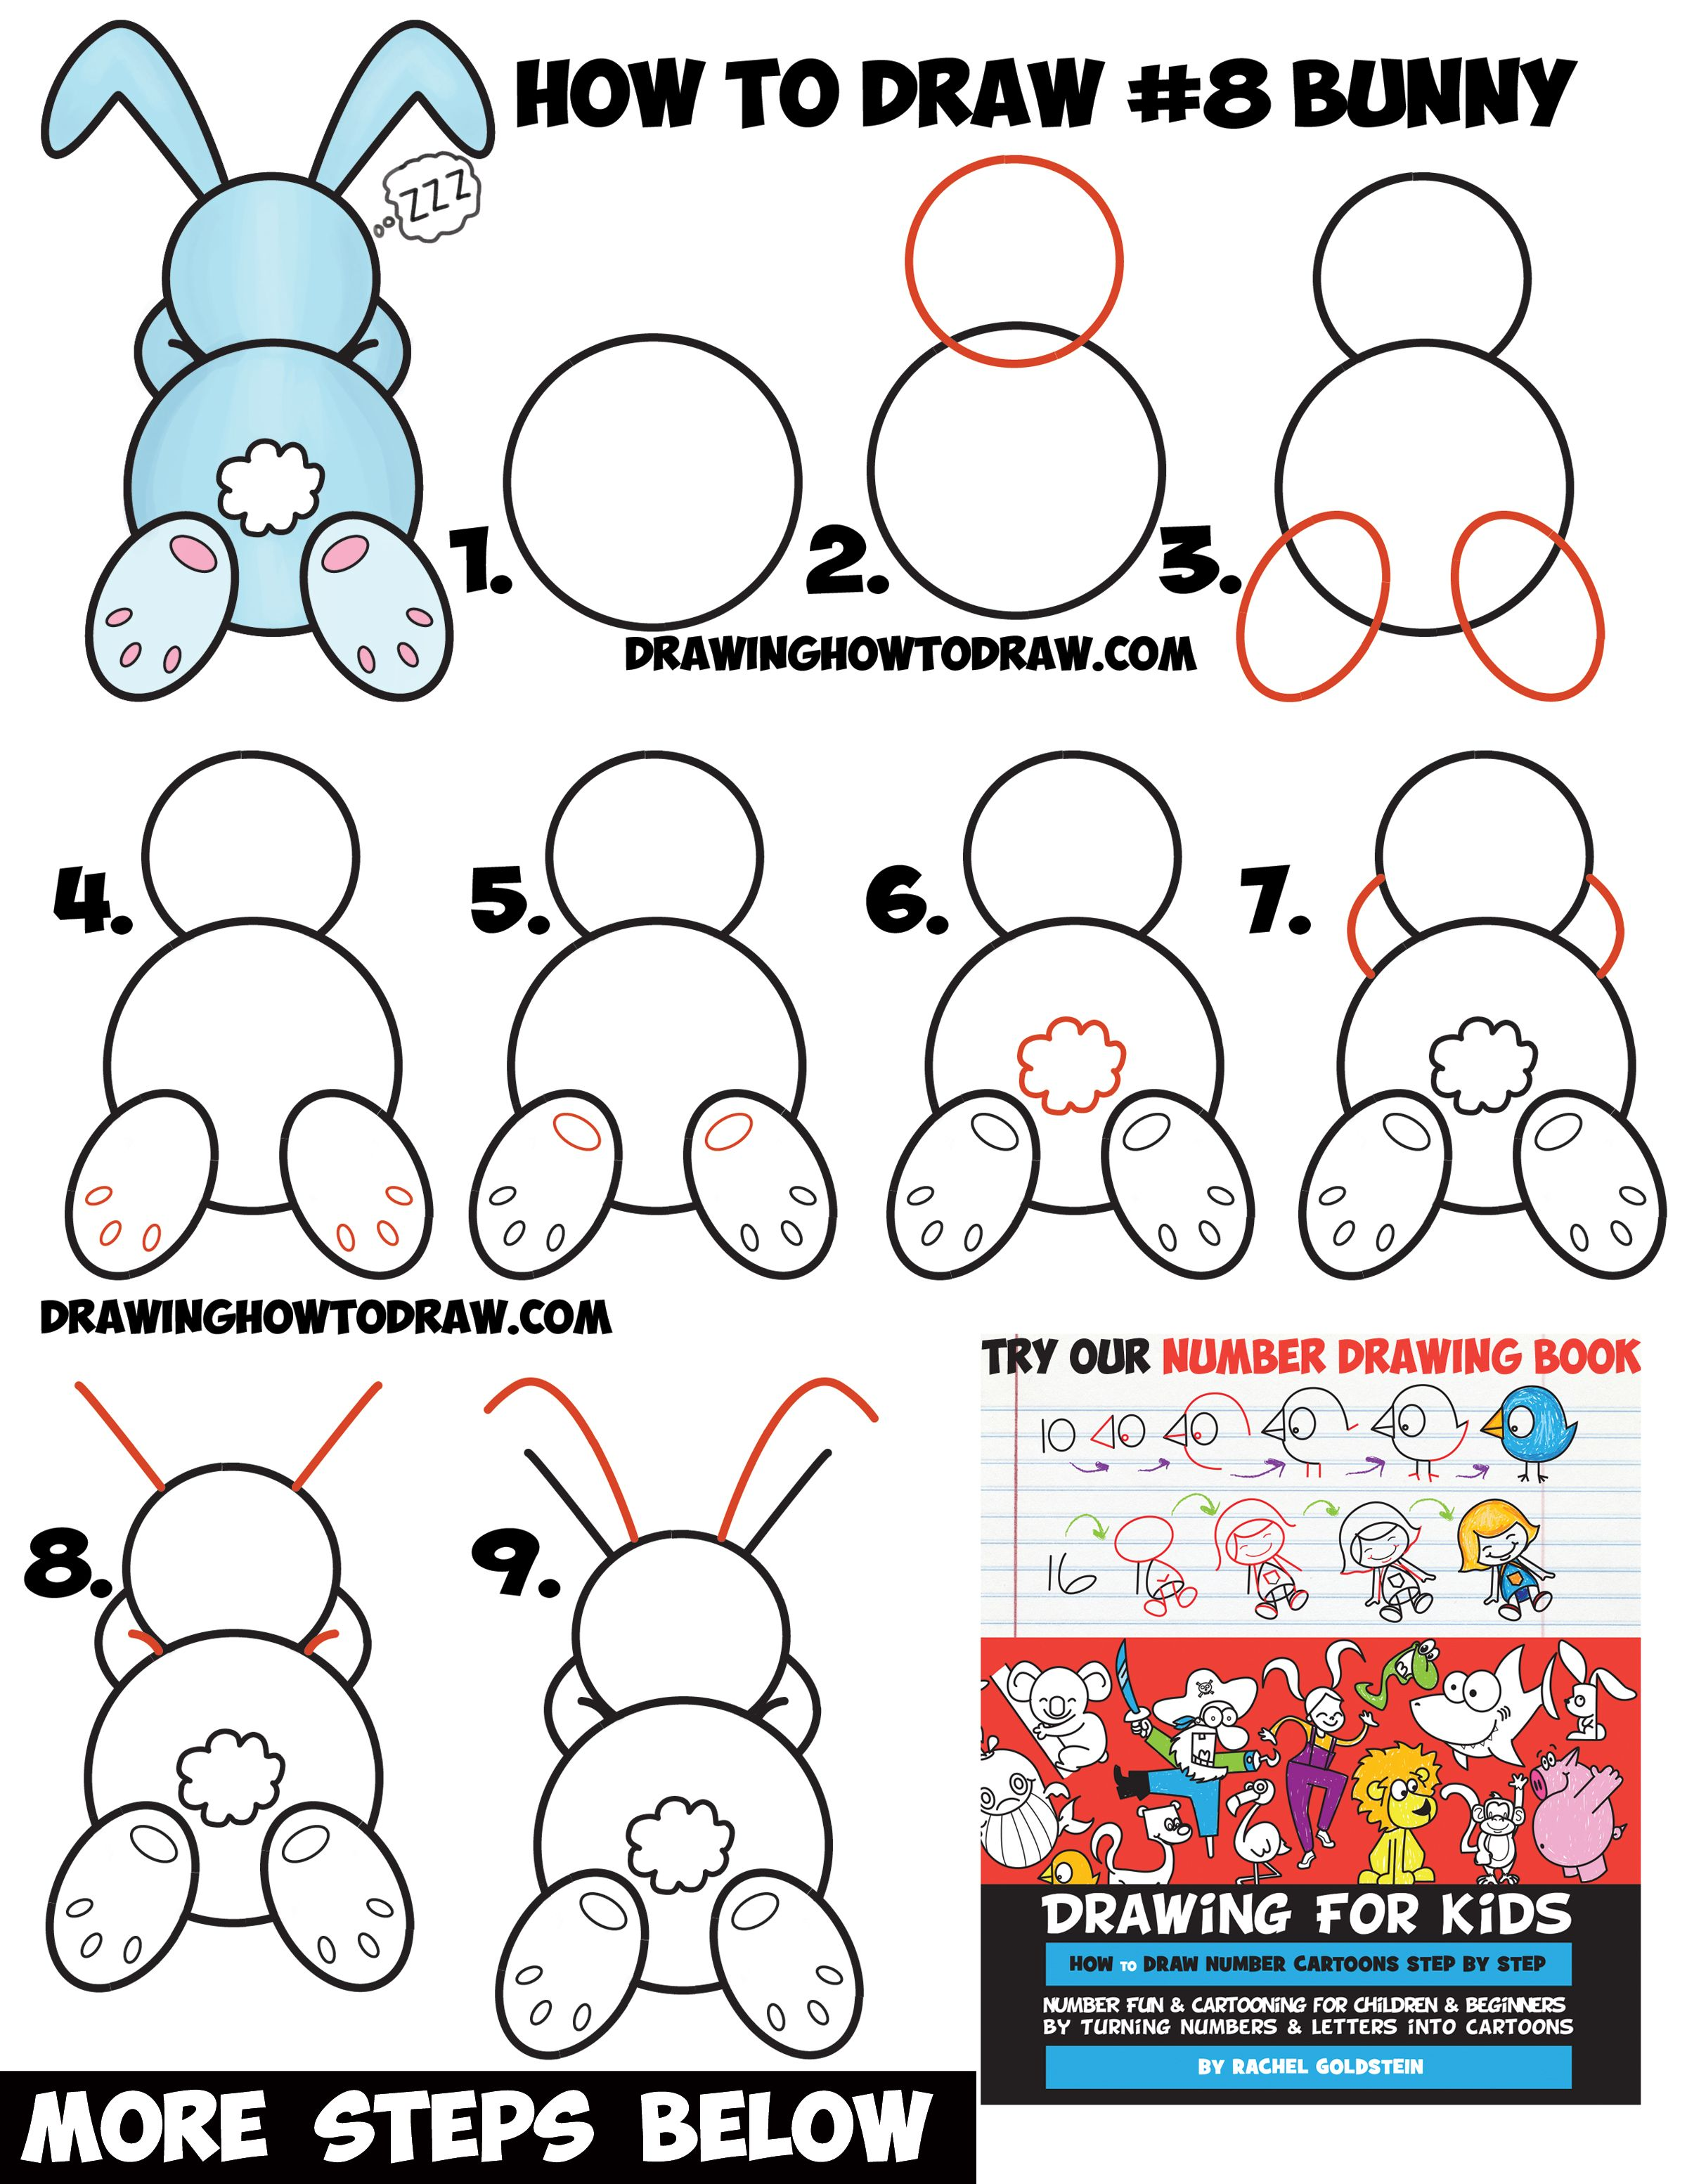 How to Draw a Cute Cartoon Sleeping Bunny Rabbit from 8